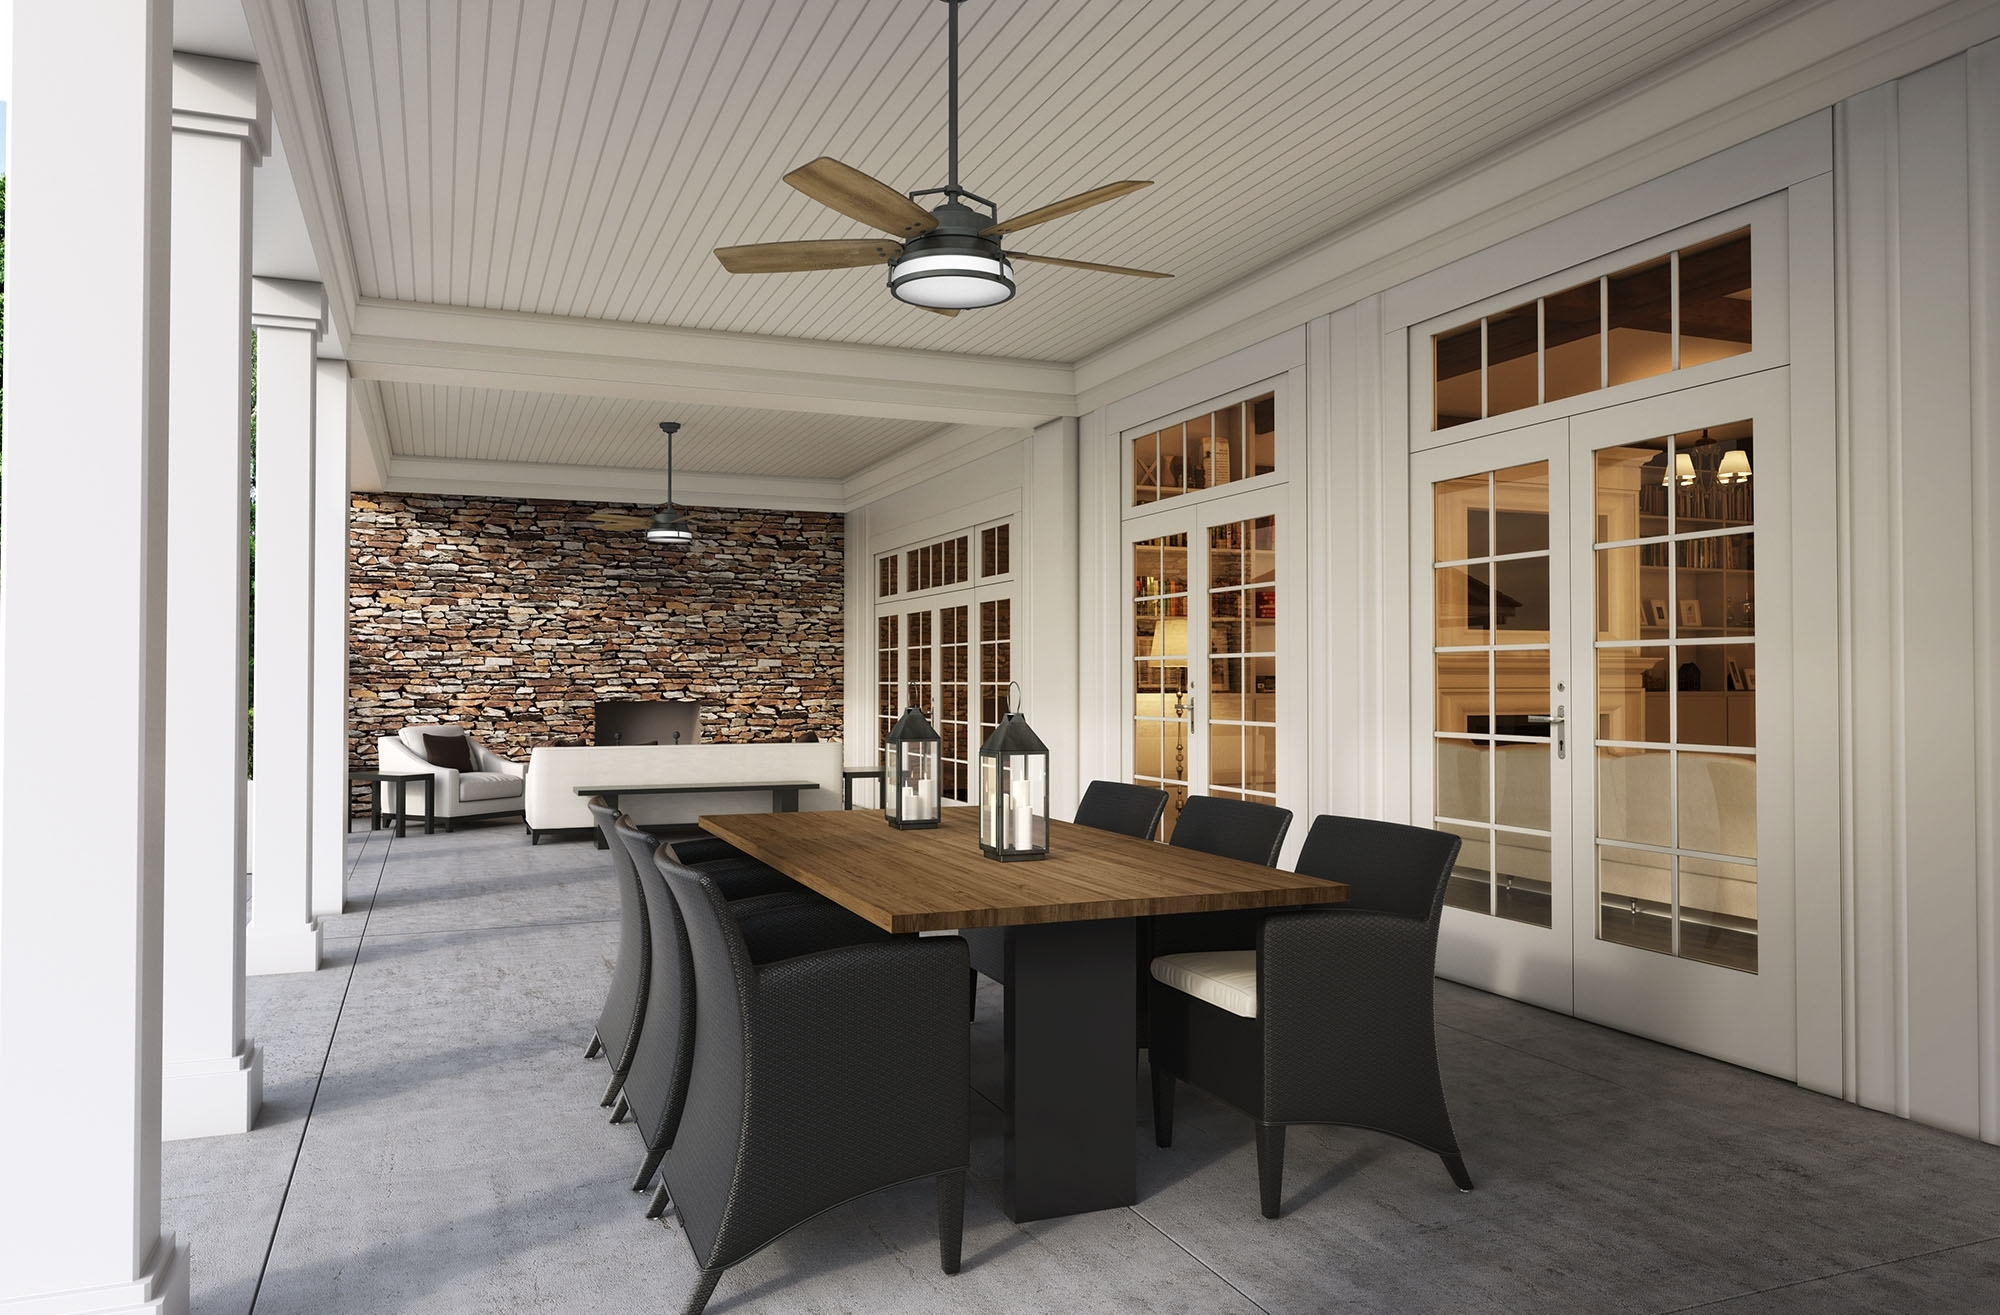 Joanna Gaines Outdoor Ceiling Fans In Preferred Caneel Bay Featured In Hgtv's Fixer Upper – Casablanca Fan Company Blog (View 7 of 20)